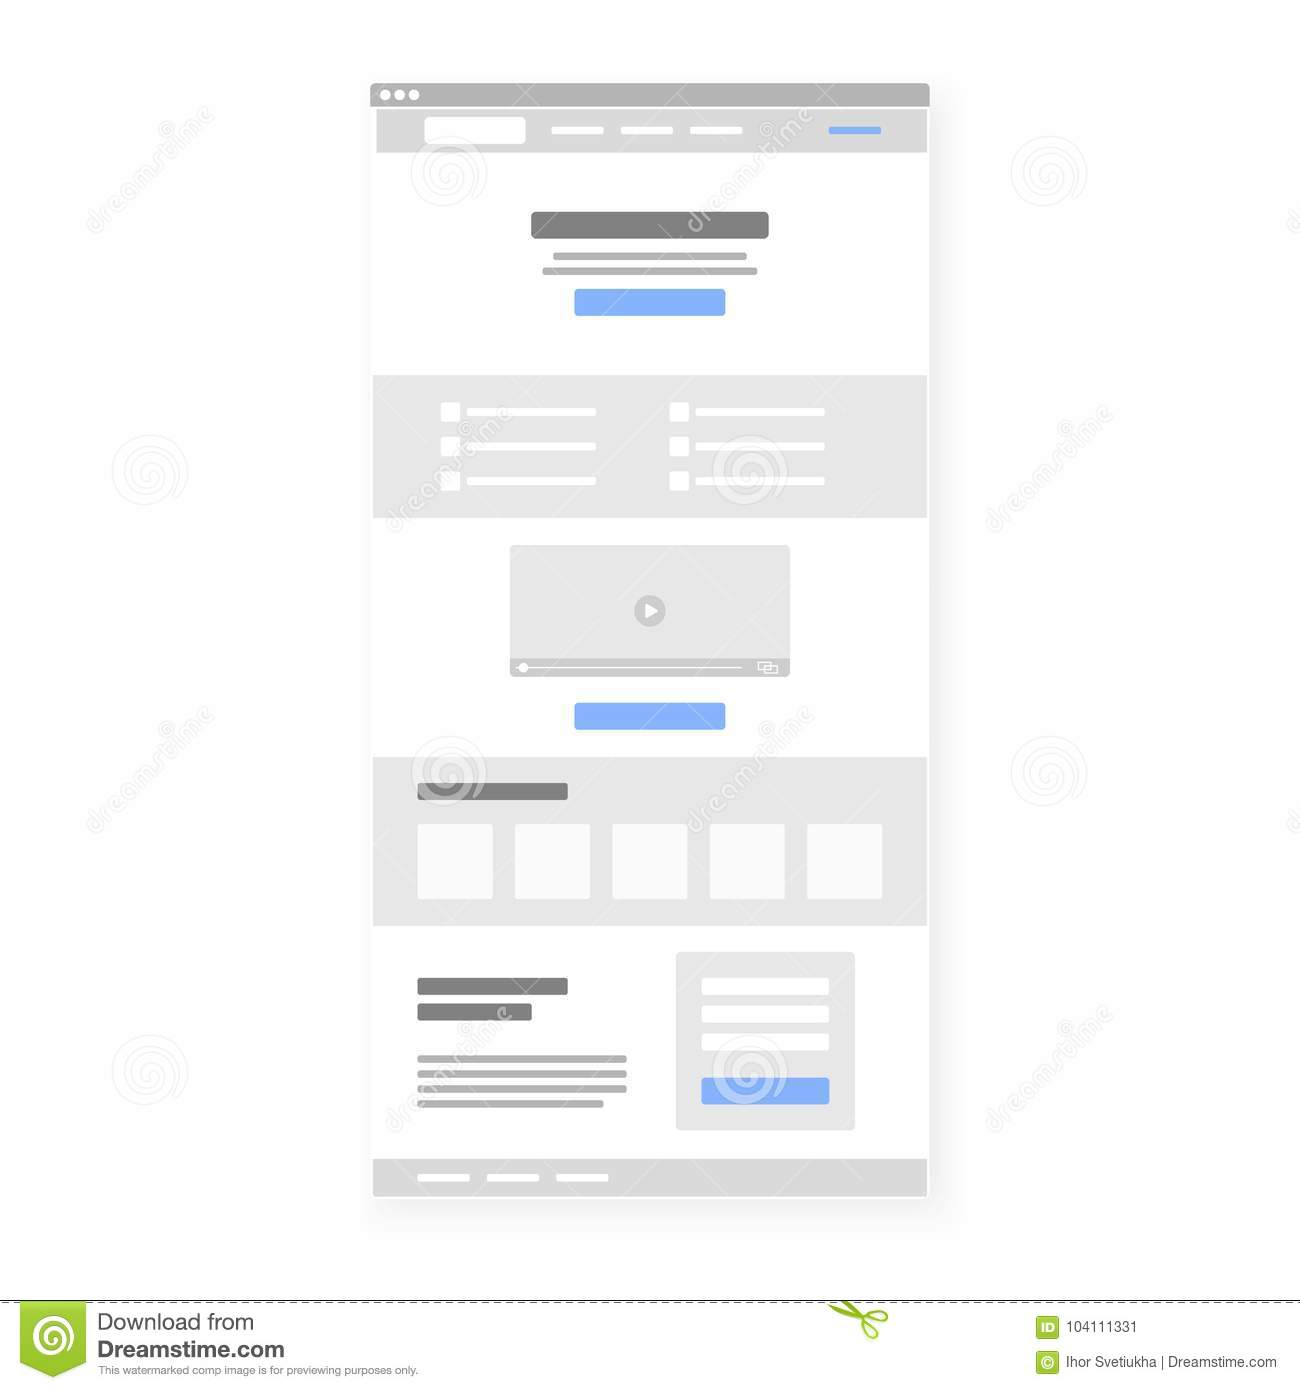 Structure template of landing page. Call To Action button selected blue. Vector illustration